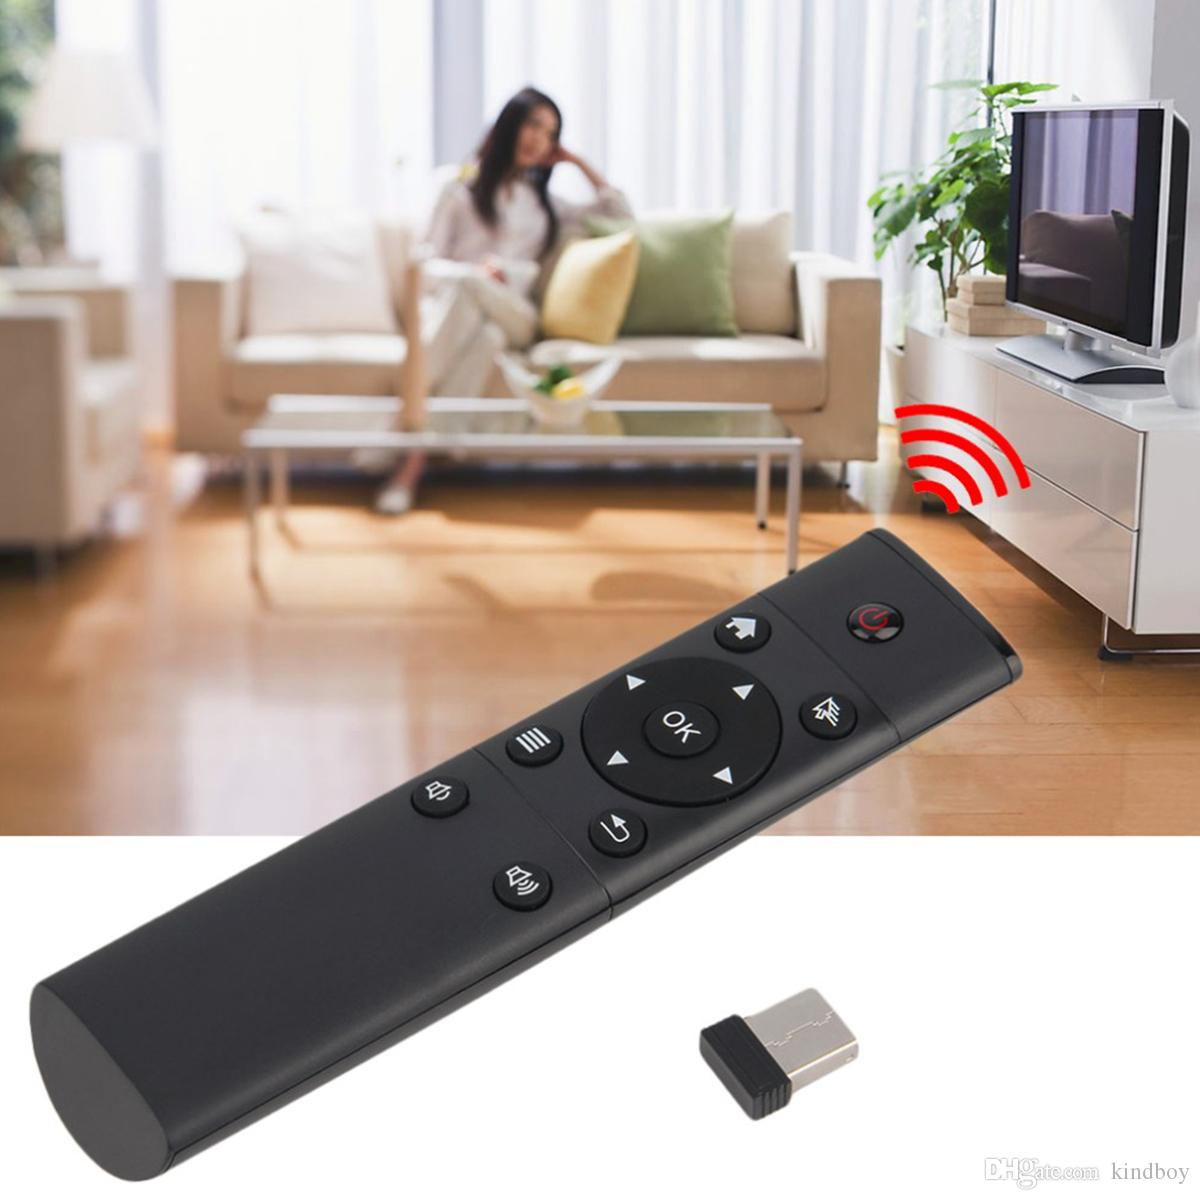 FM4 Magic 2.4G Wireless Remote Controller With USB Receiver Adapter for Android TV Box Smart TV TV-Dongle PC Projector DHL